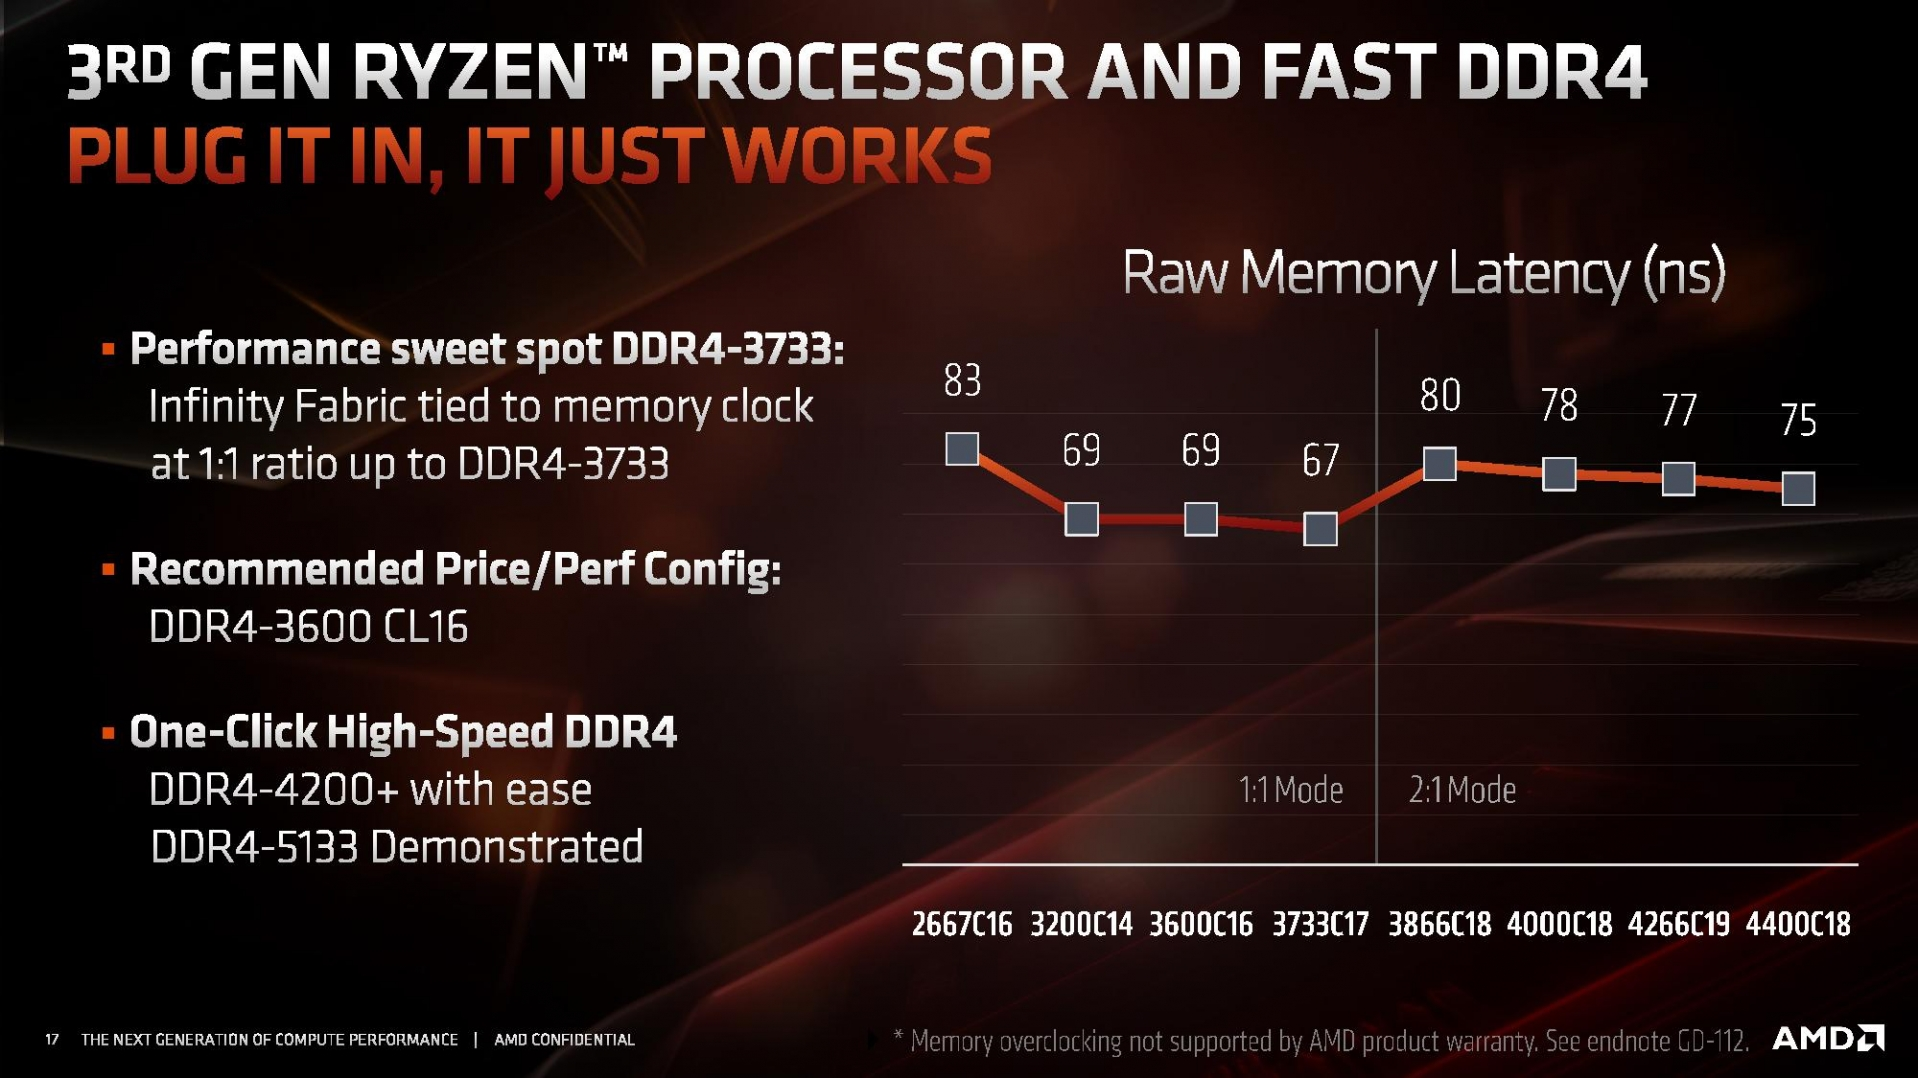 AMD's updated cache and faster DDR4 support delivers